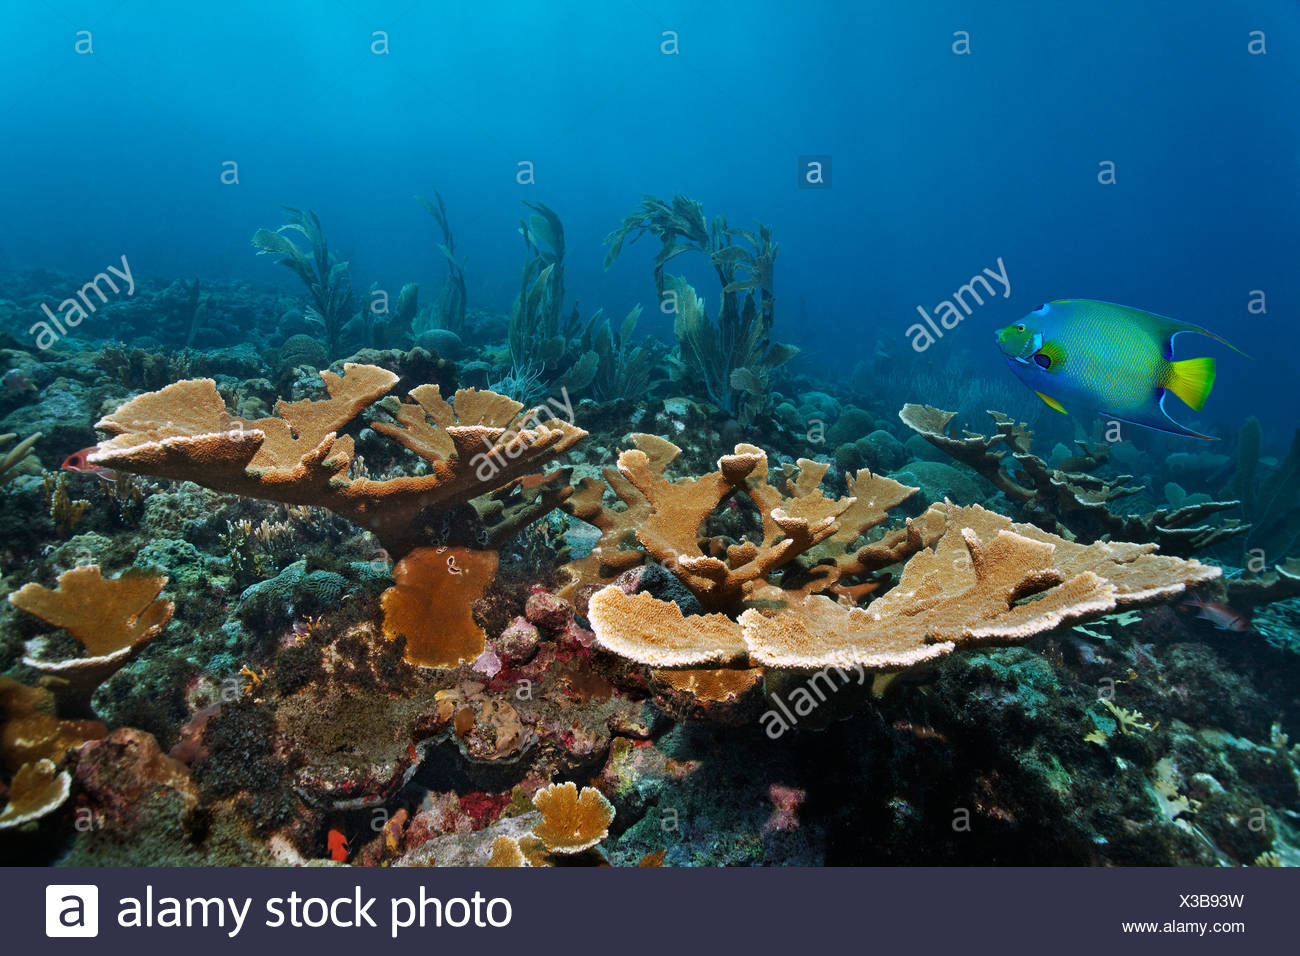 Coral reef, fish, fused Staghorn Coral (Acropora prolifera), Queen Angelfish (Holacanthus ciliaris), Little Tobago, Speyside - Stock Image